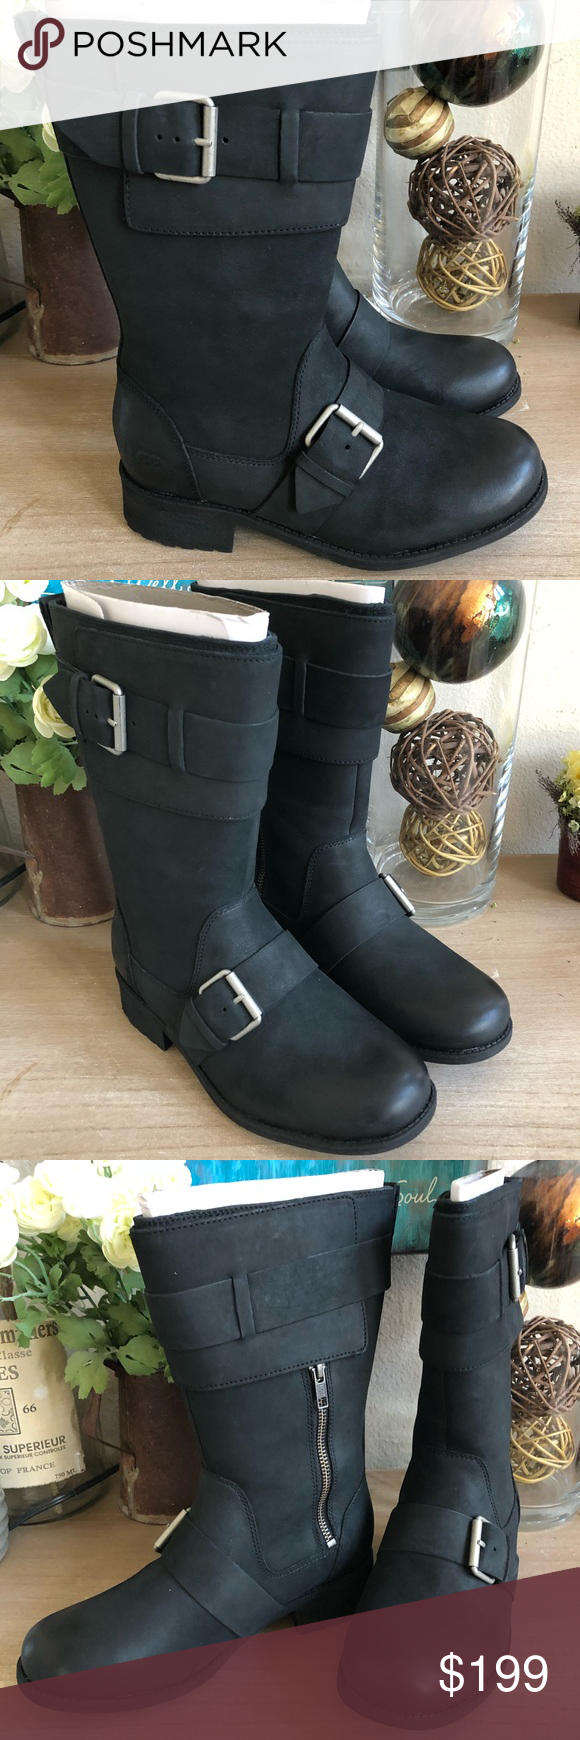 0f8bc2a37be Chancey Black Leather Calf Biker Boots BRAND NEW! A wide front panel ...